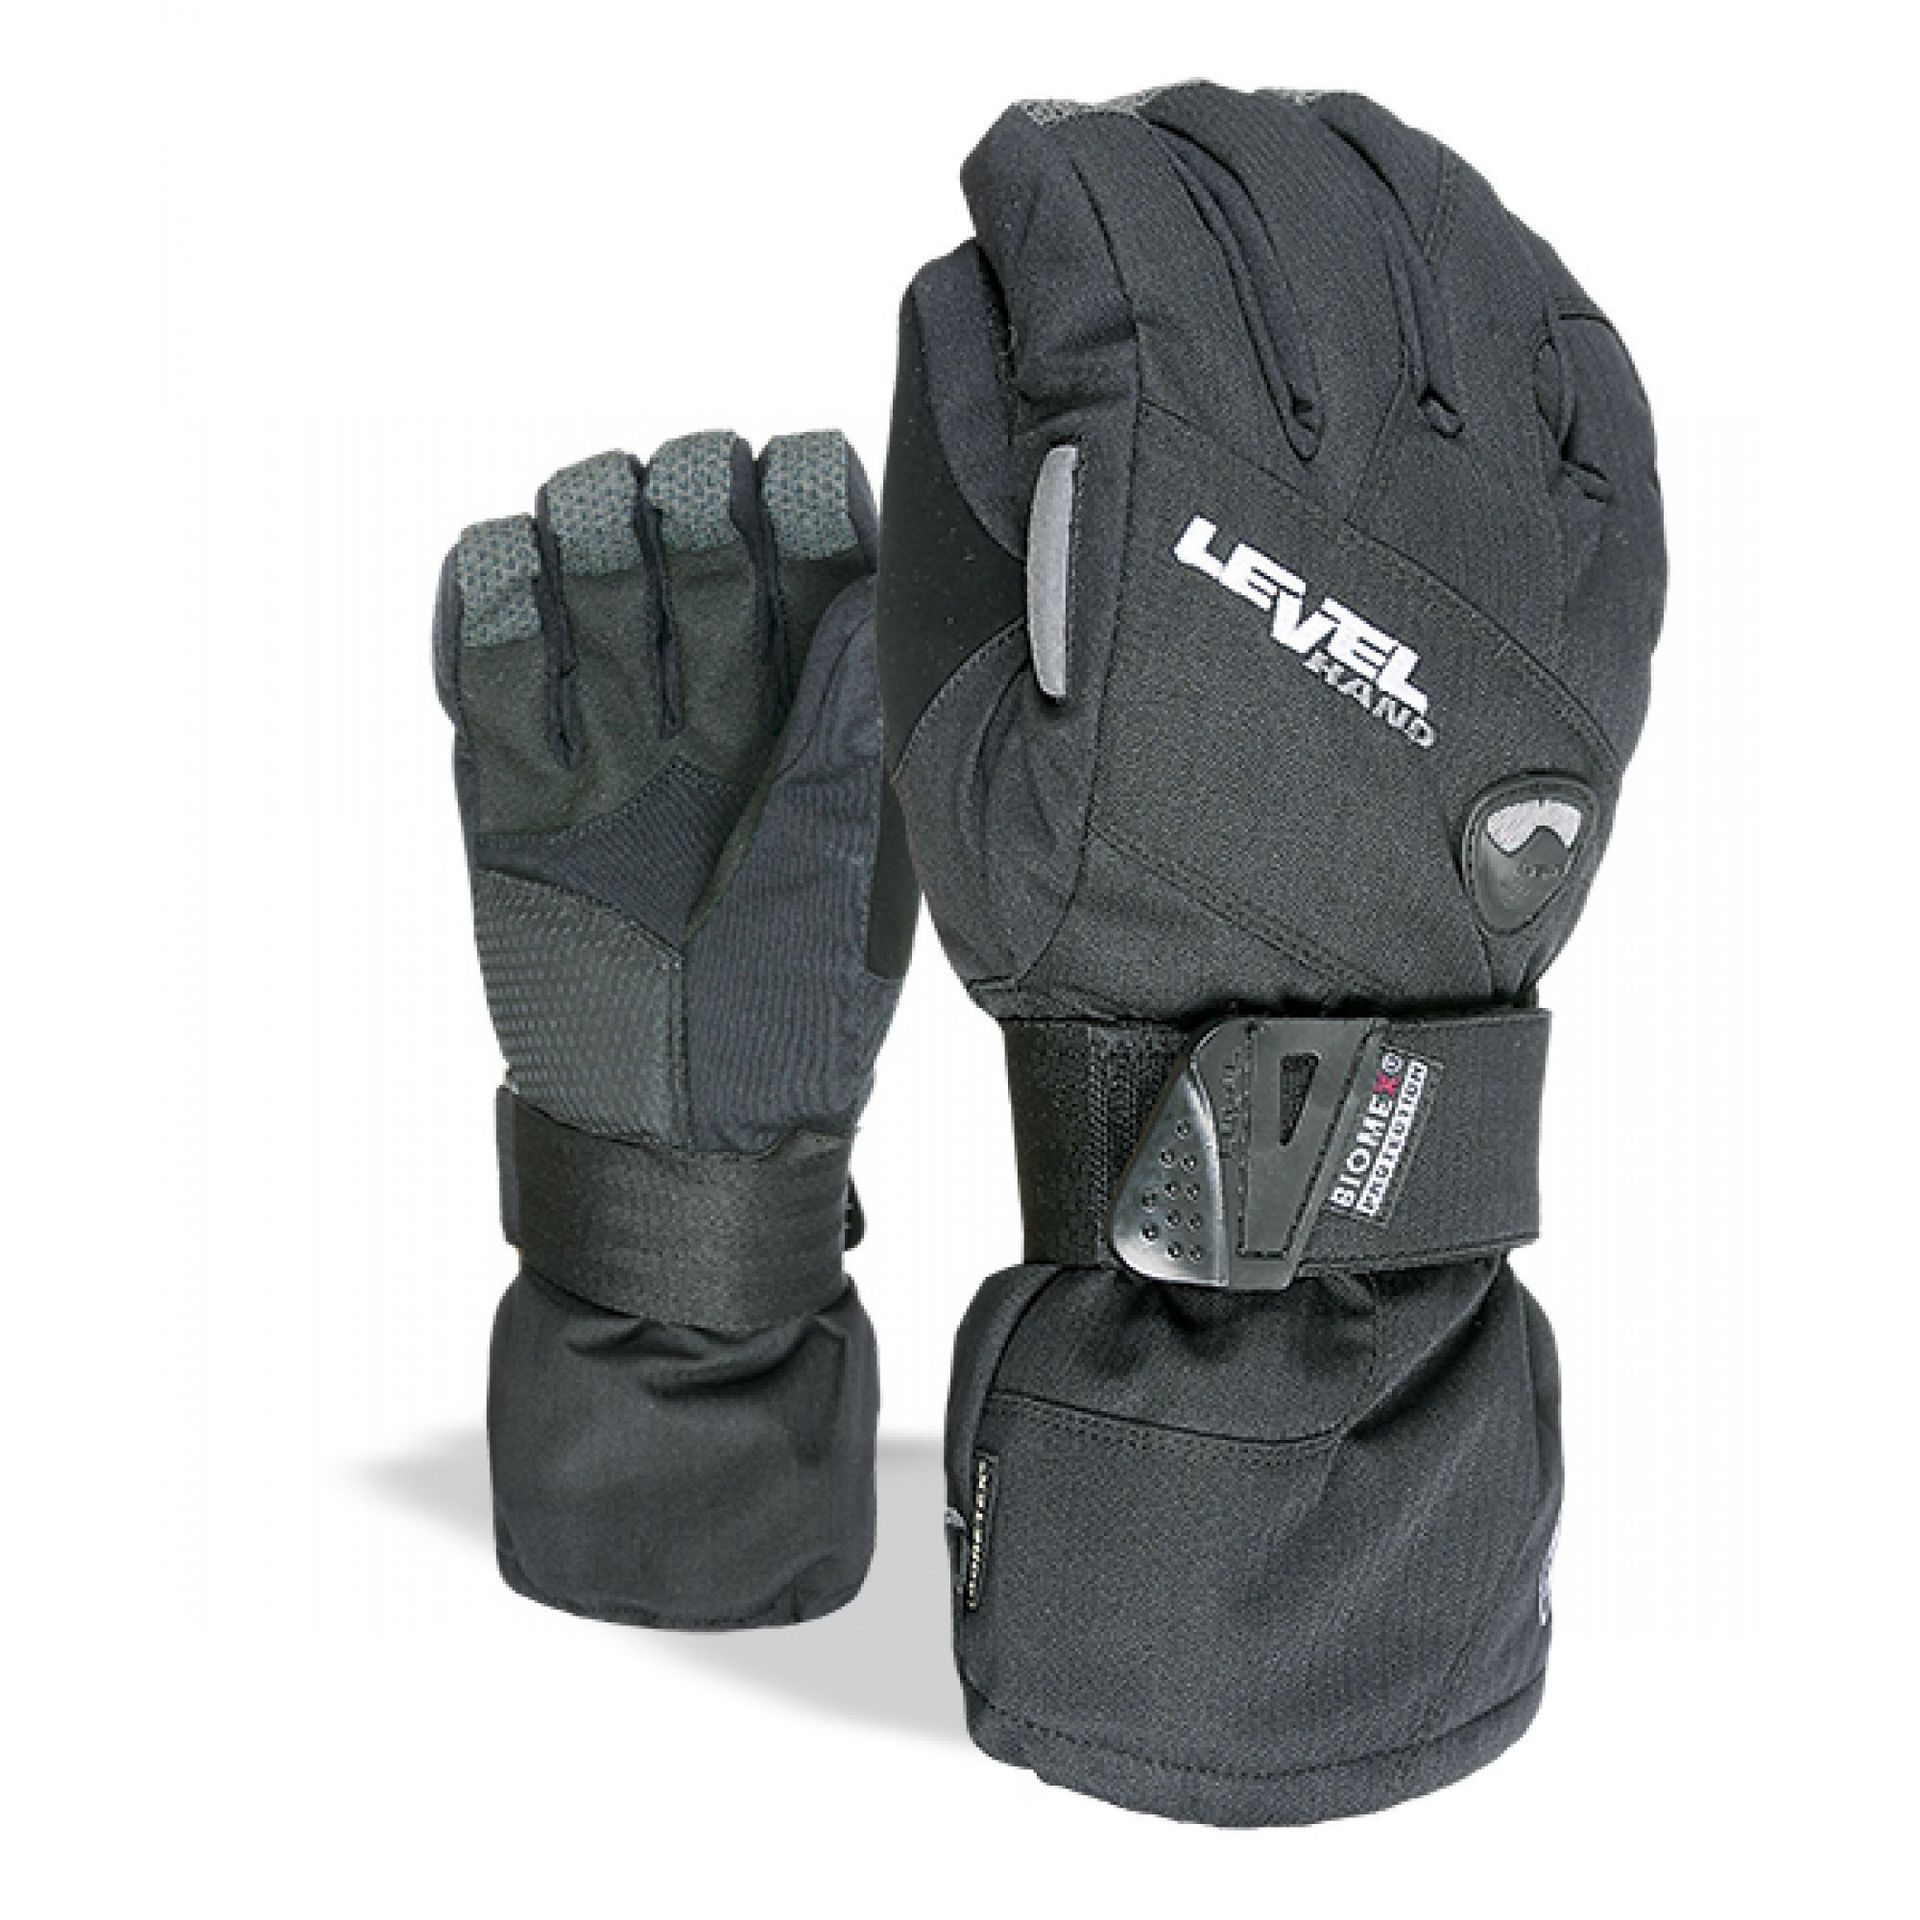 RĘKAWICE LEVEL HALF PIPE GORE-TEX 01 BLACK